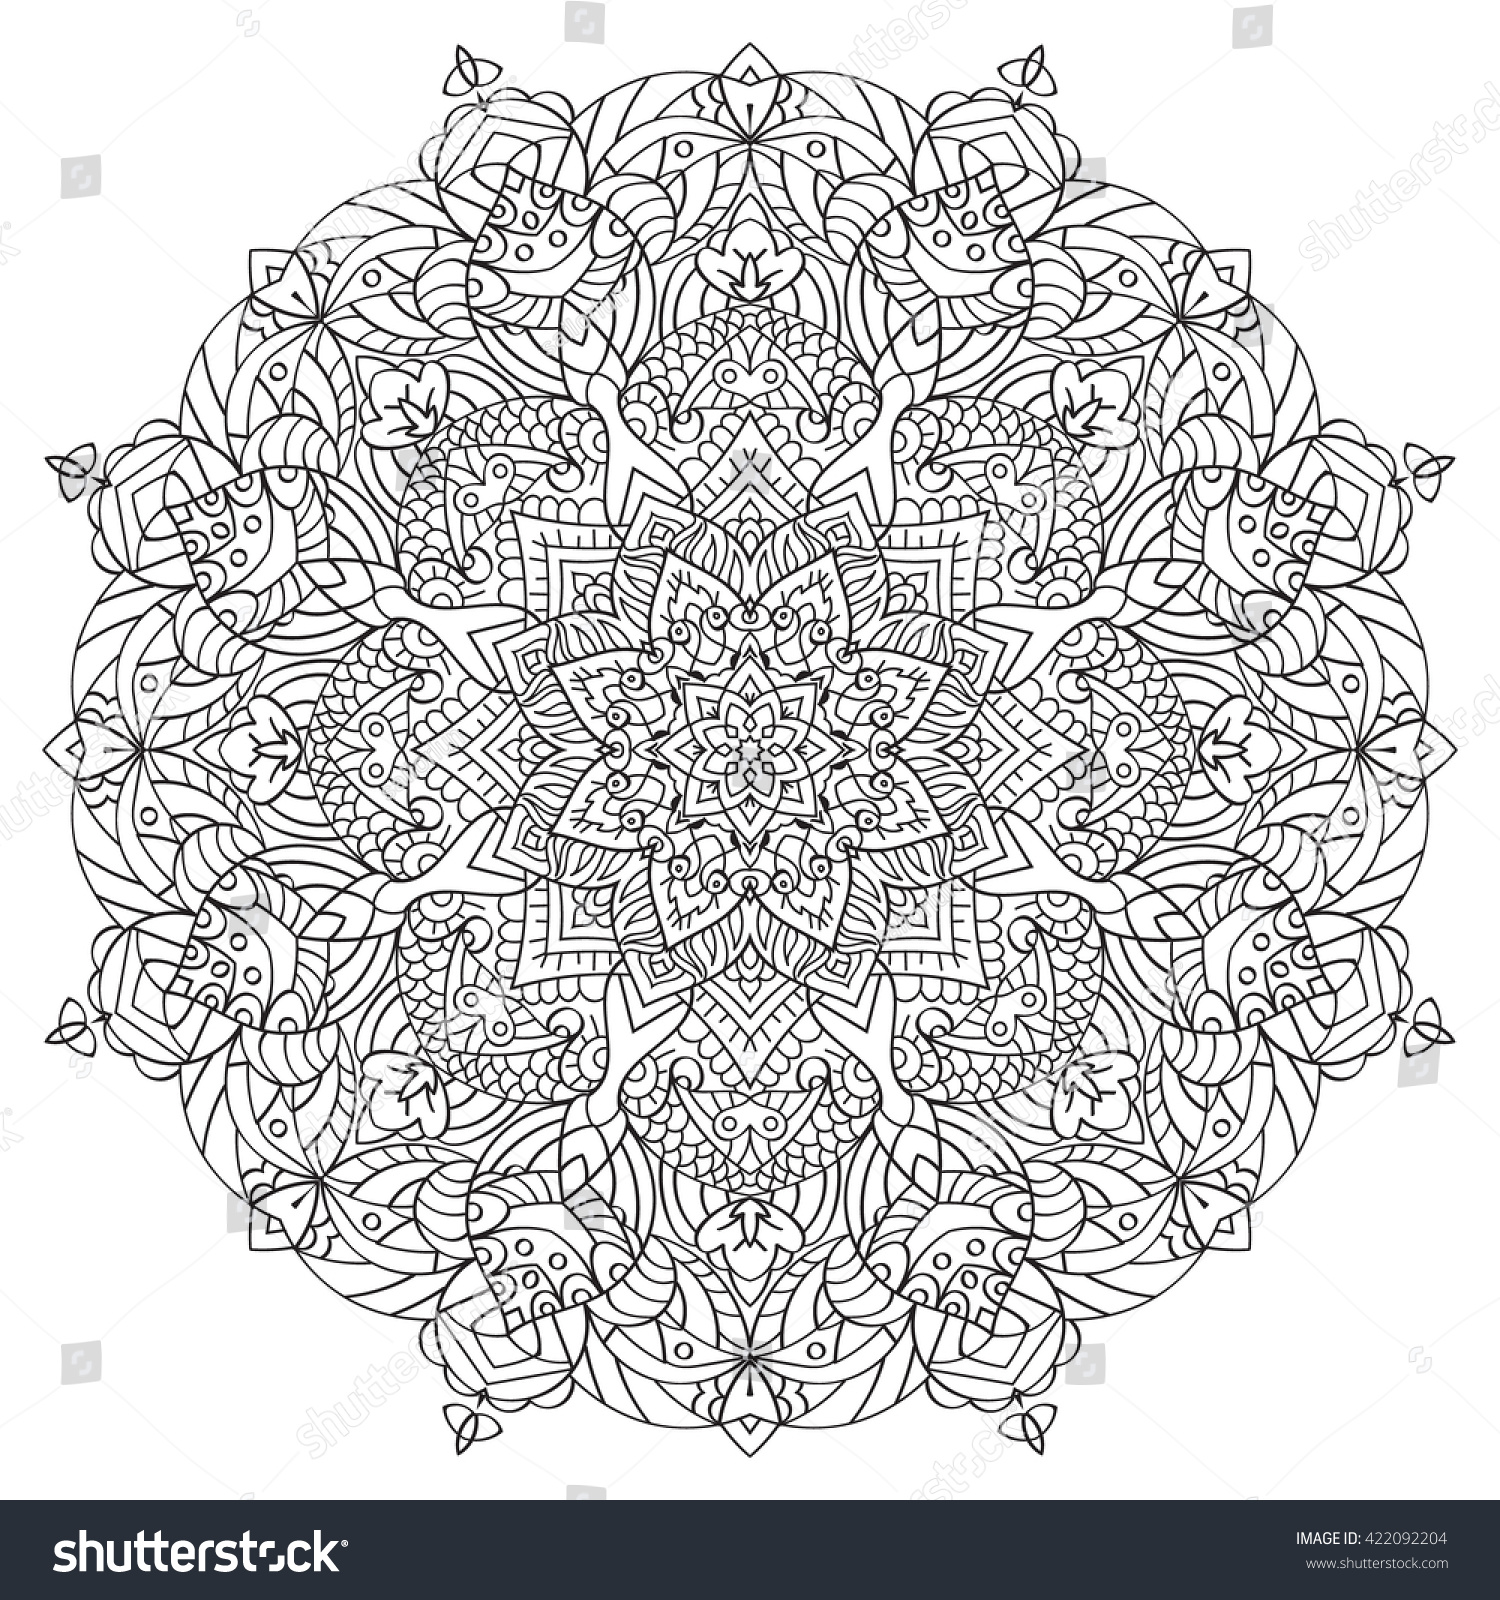 mandala coloring book for adult circular pattern - Mandala Coloring Books For Adults